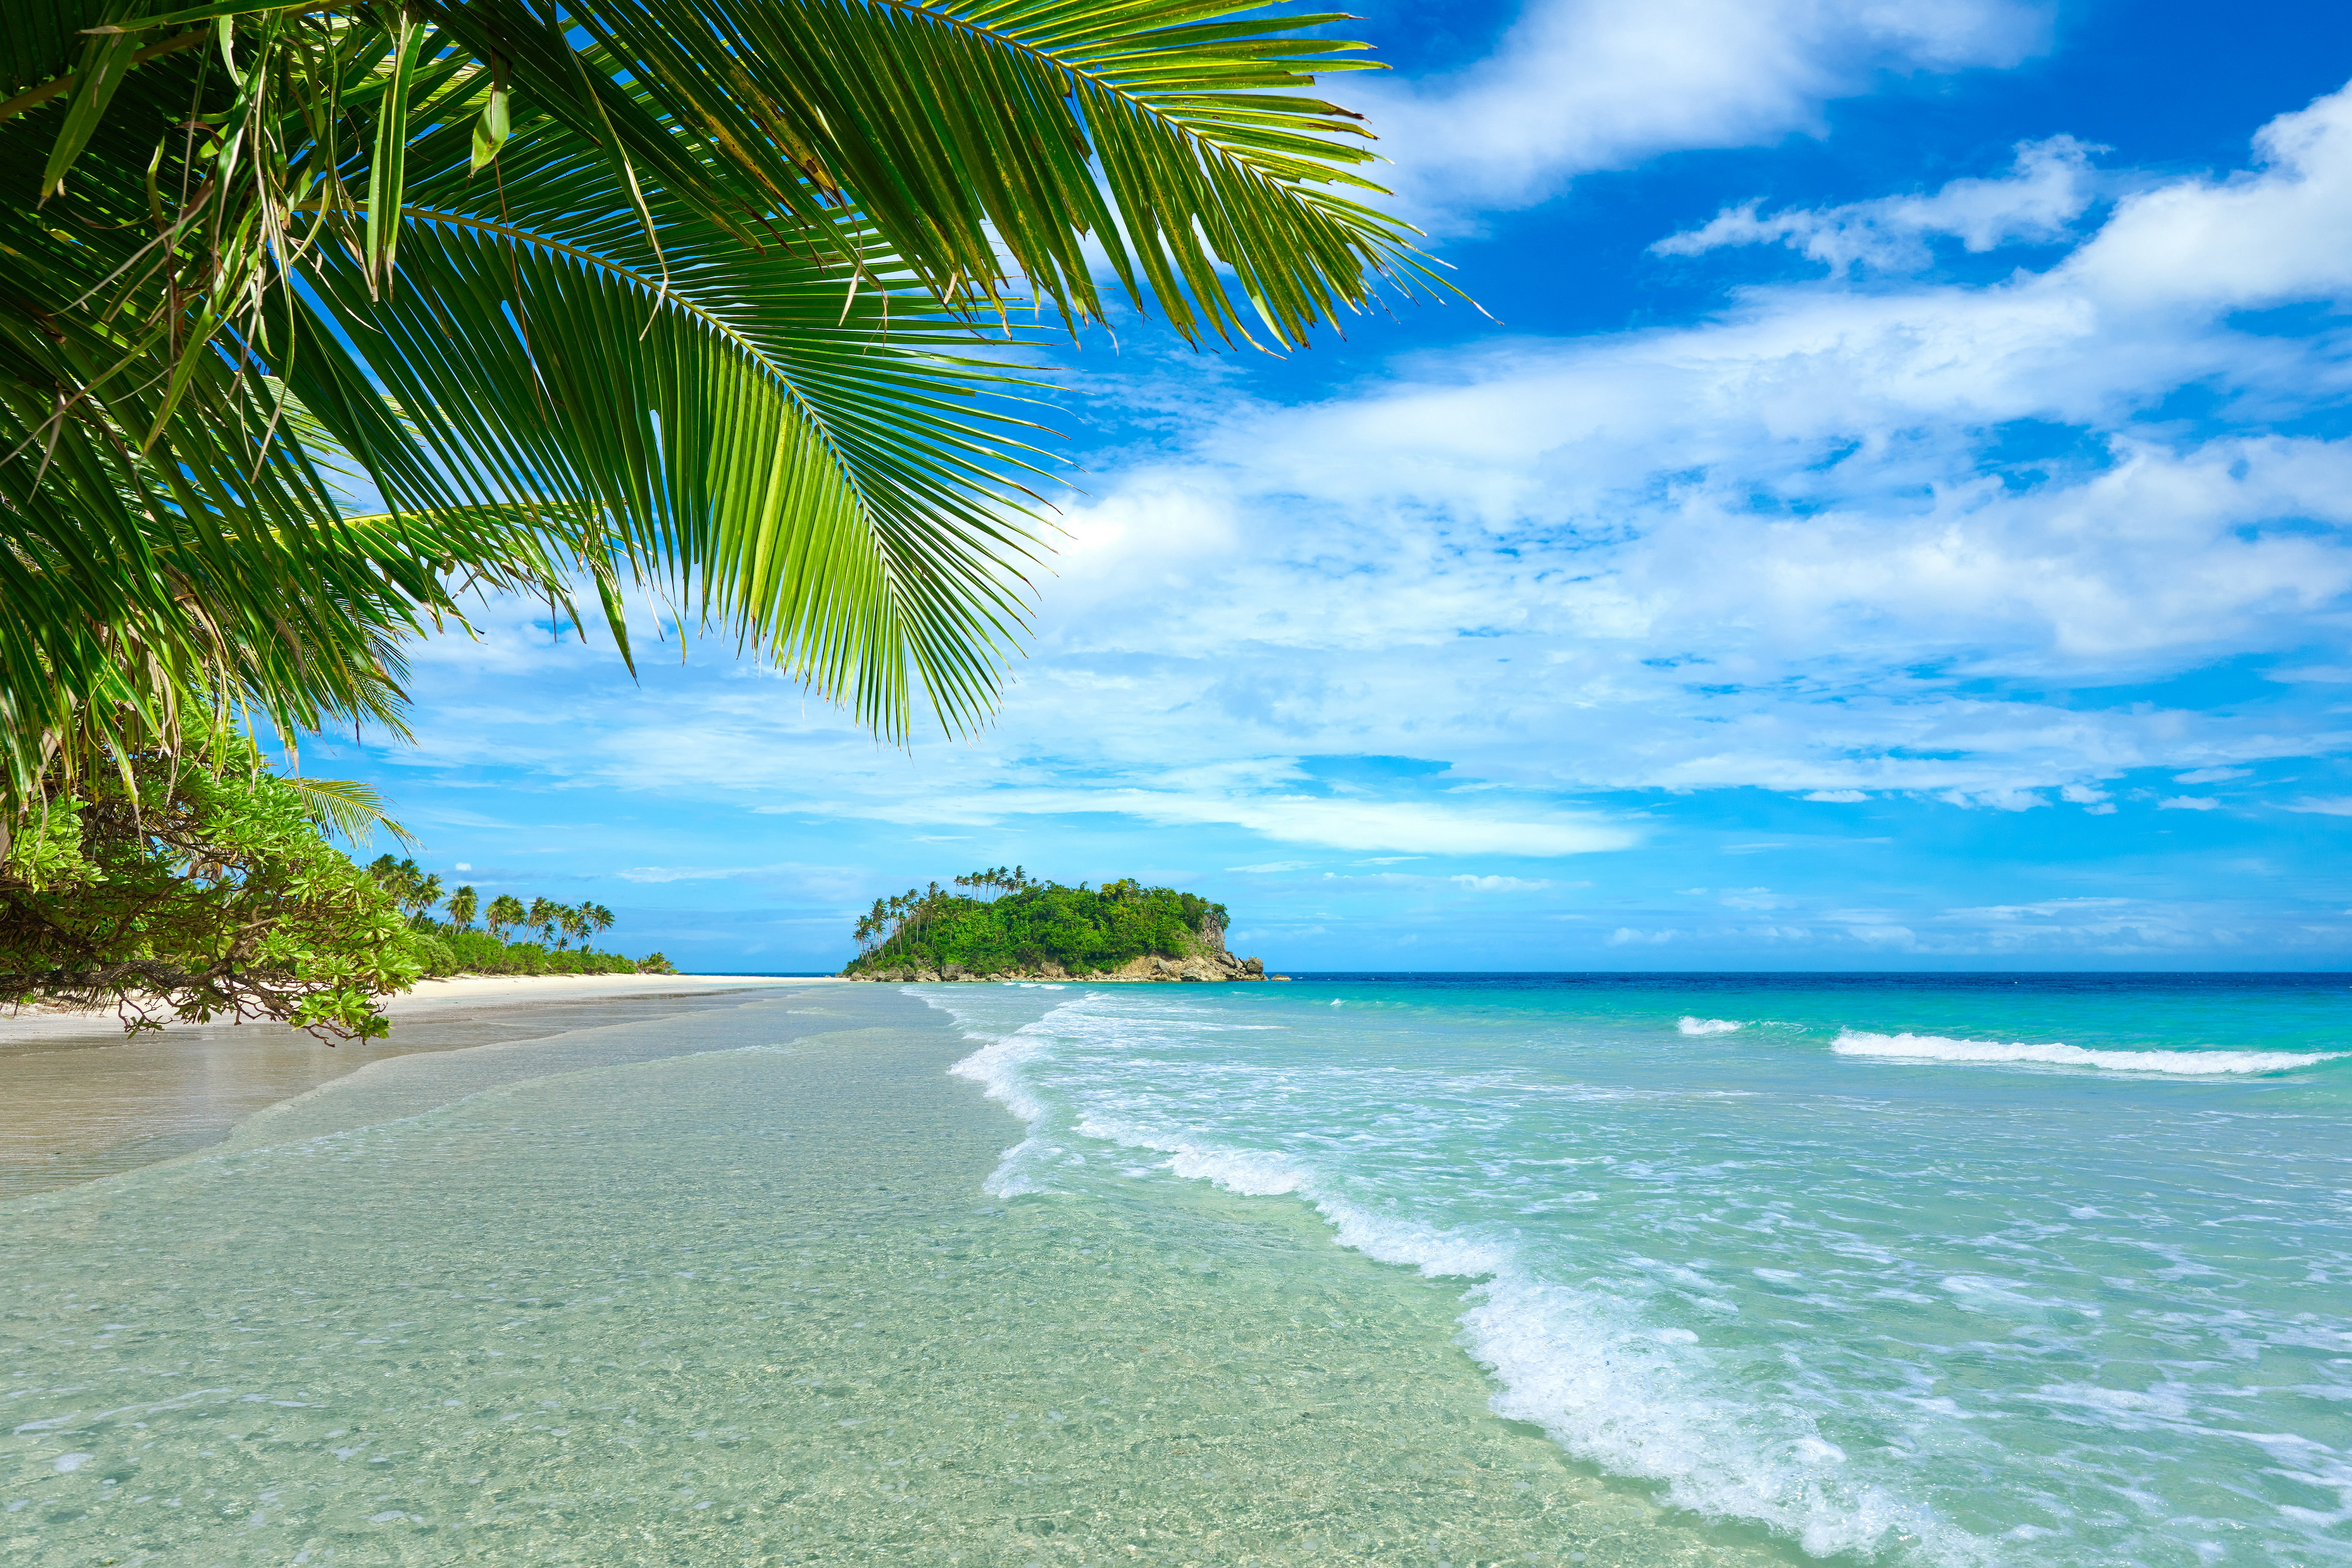 Retina Wallpaper Beach Sea Hd Desktop Wallpapers: Tropical Beach 5k Retina Ultra HD Wallpaper